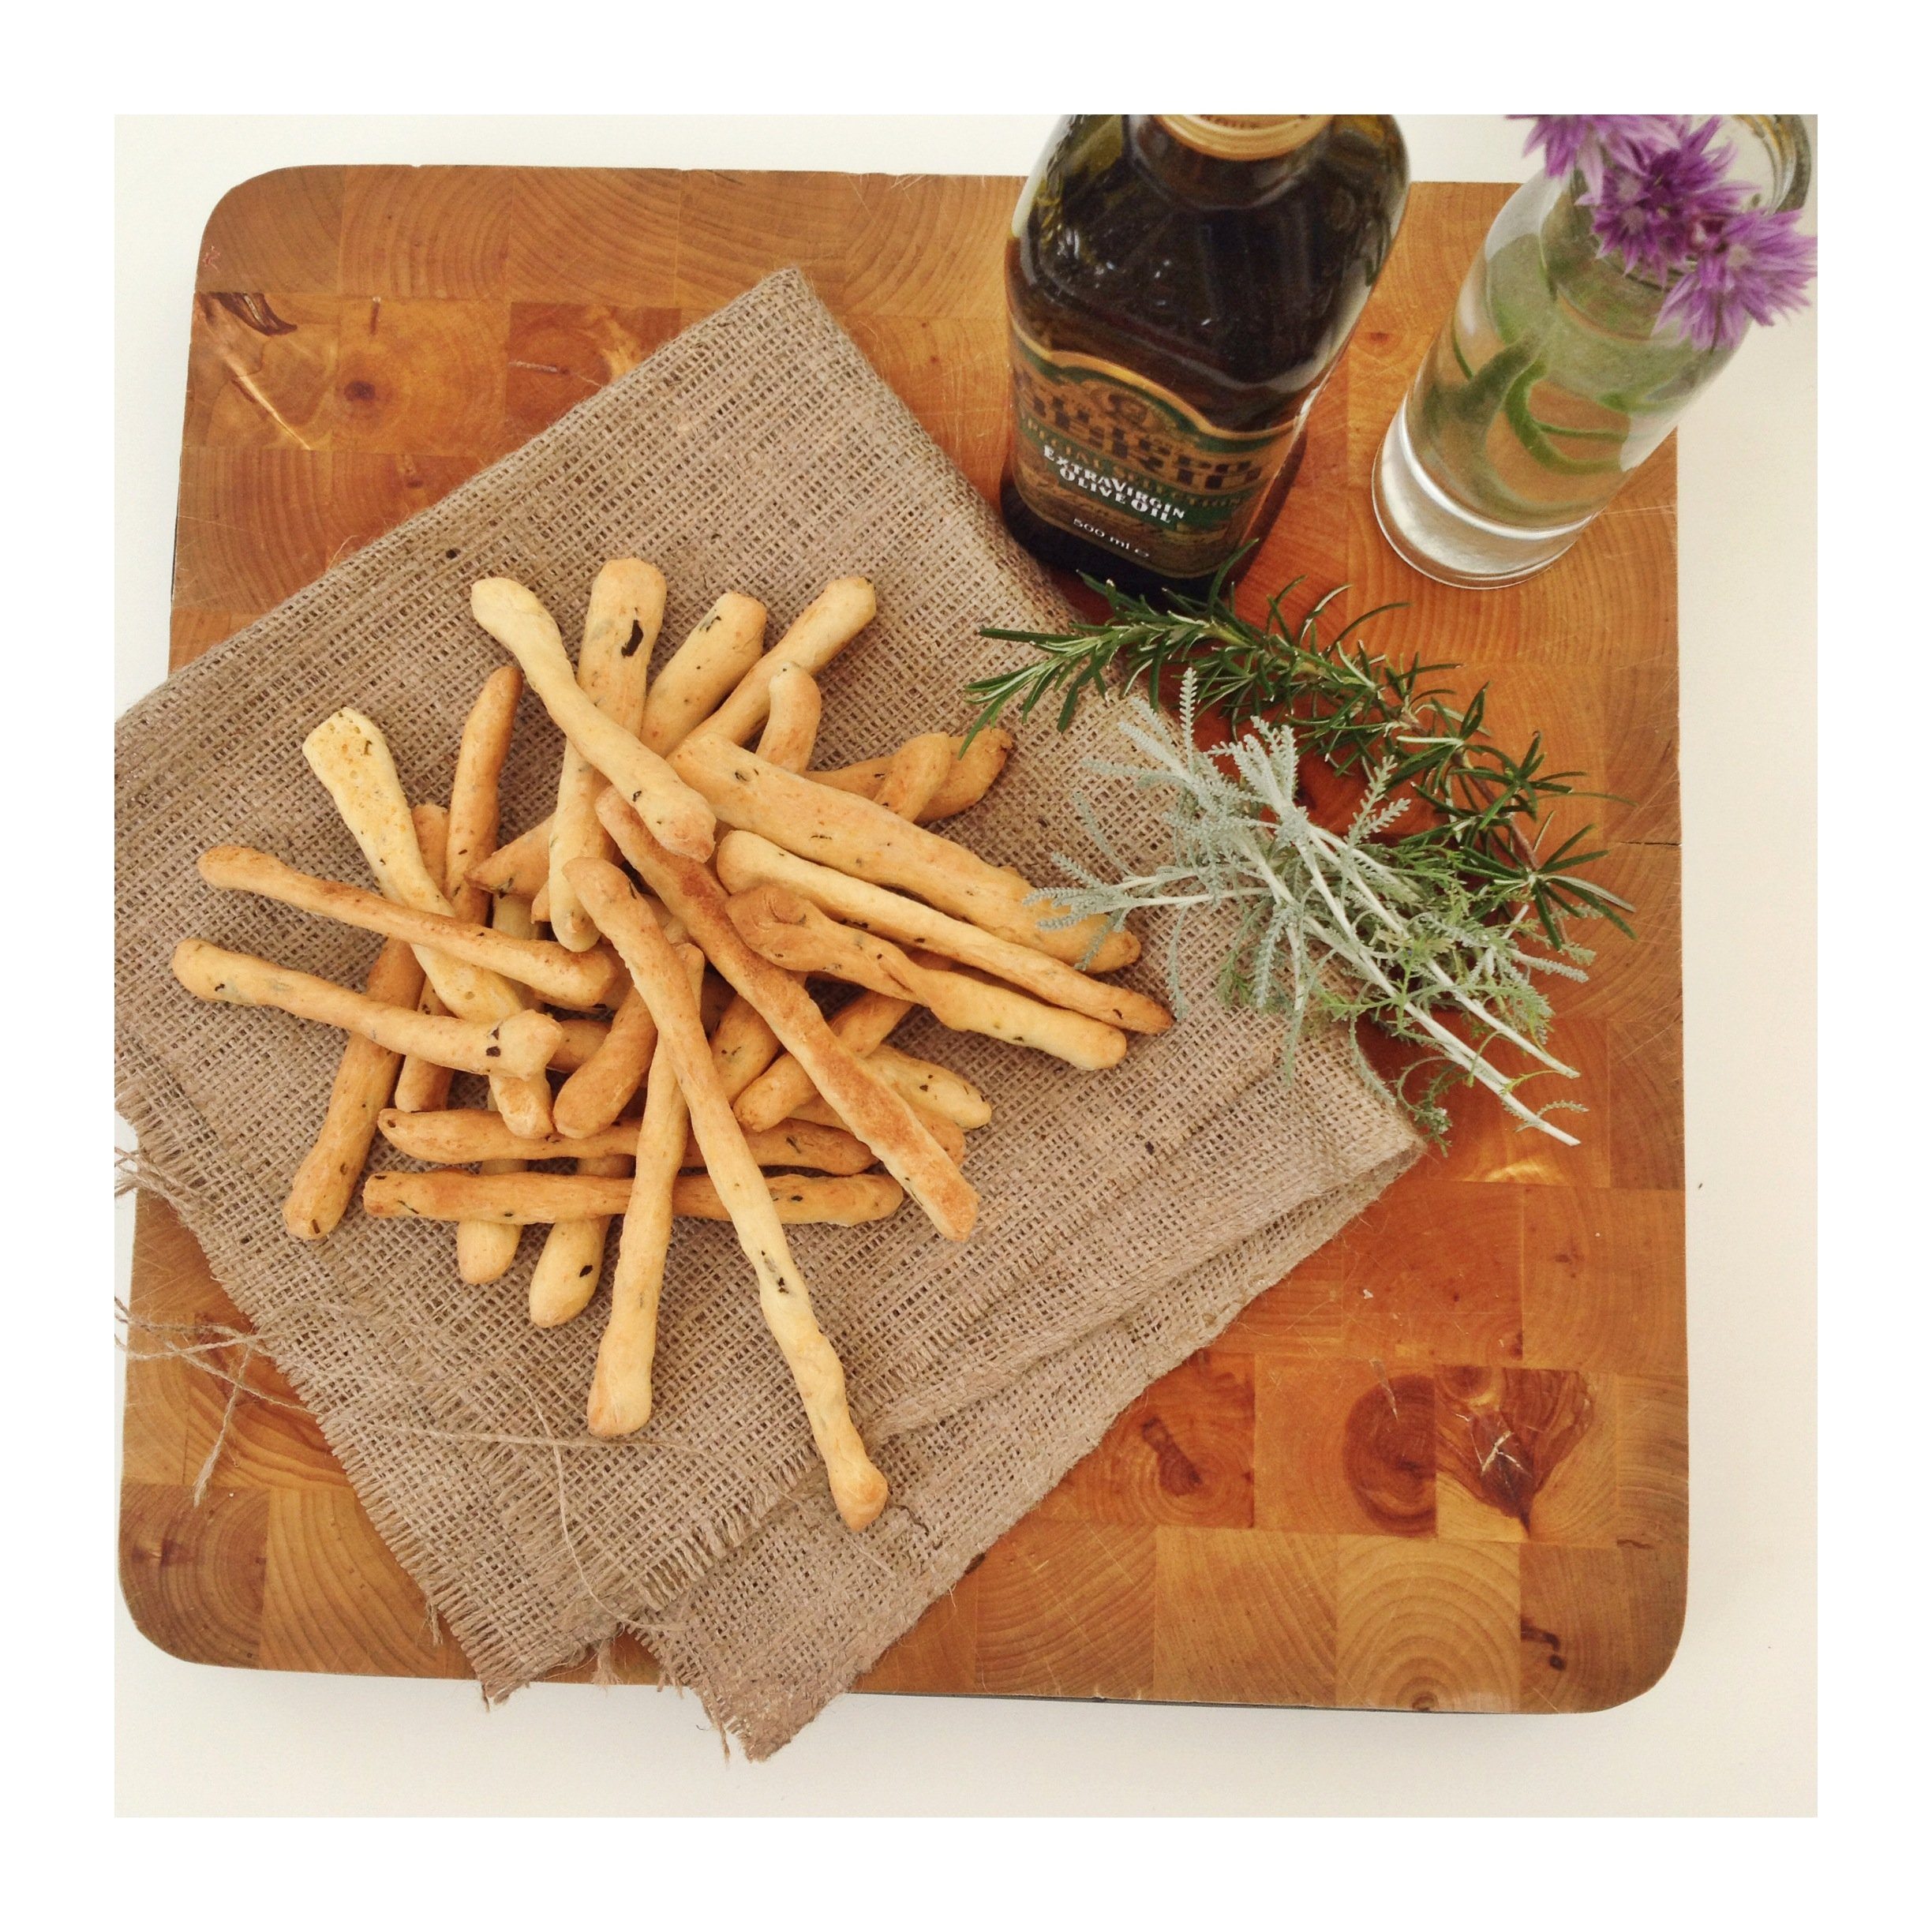 Easy cheesy breadsticks with herbs